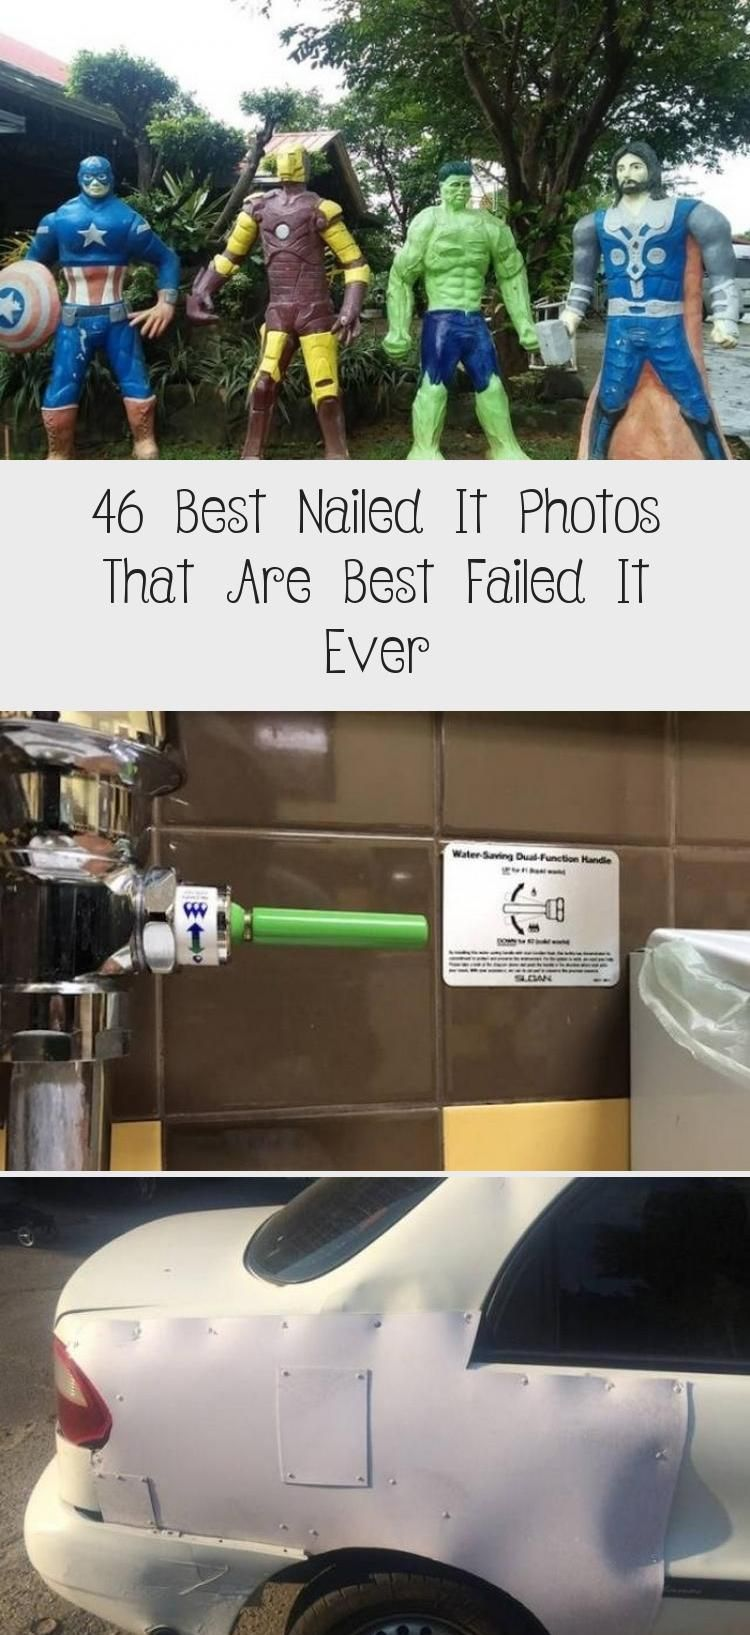 46 Best Nailed It Photos That Are Best Failed It Ever in